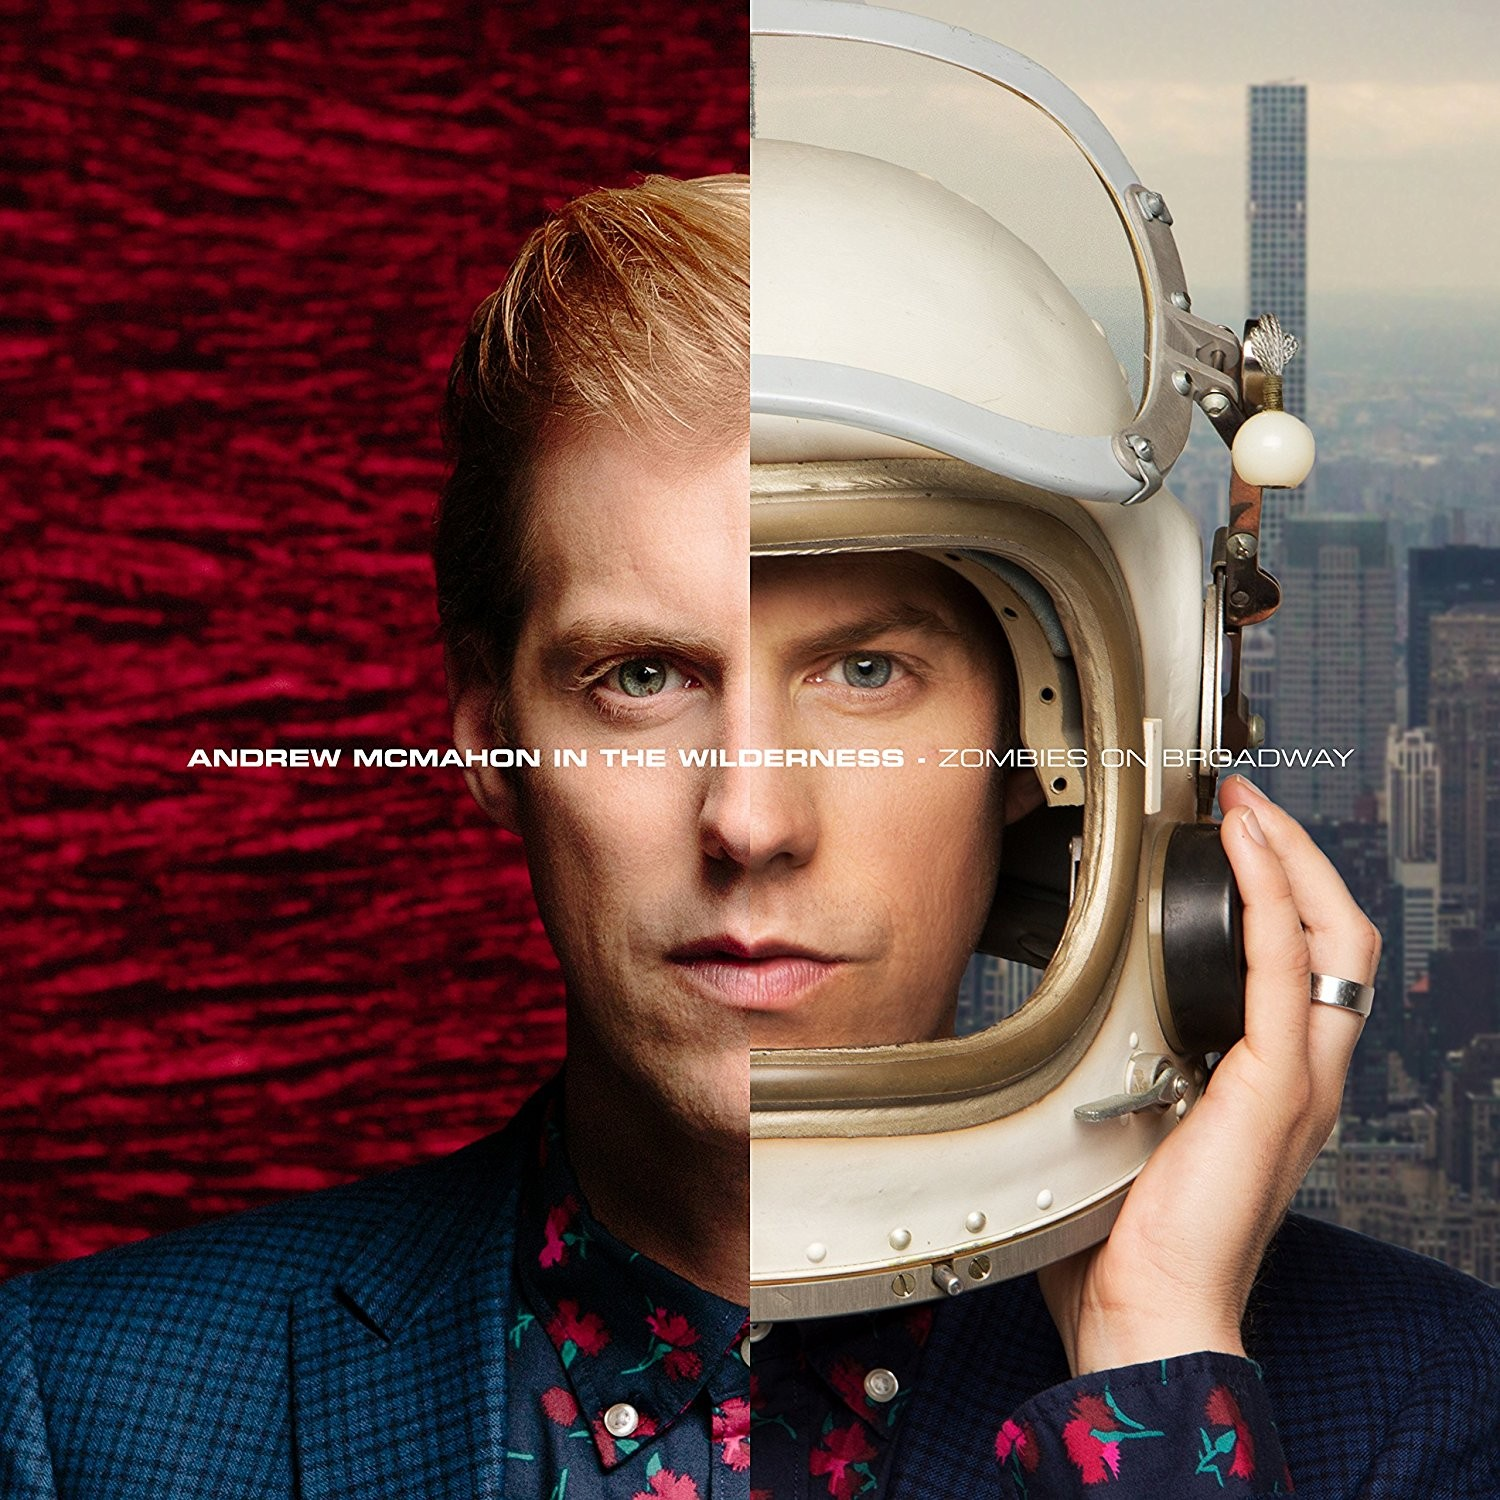 Andrew McMahon in the Wilderness - Zombies On Broadway LP